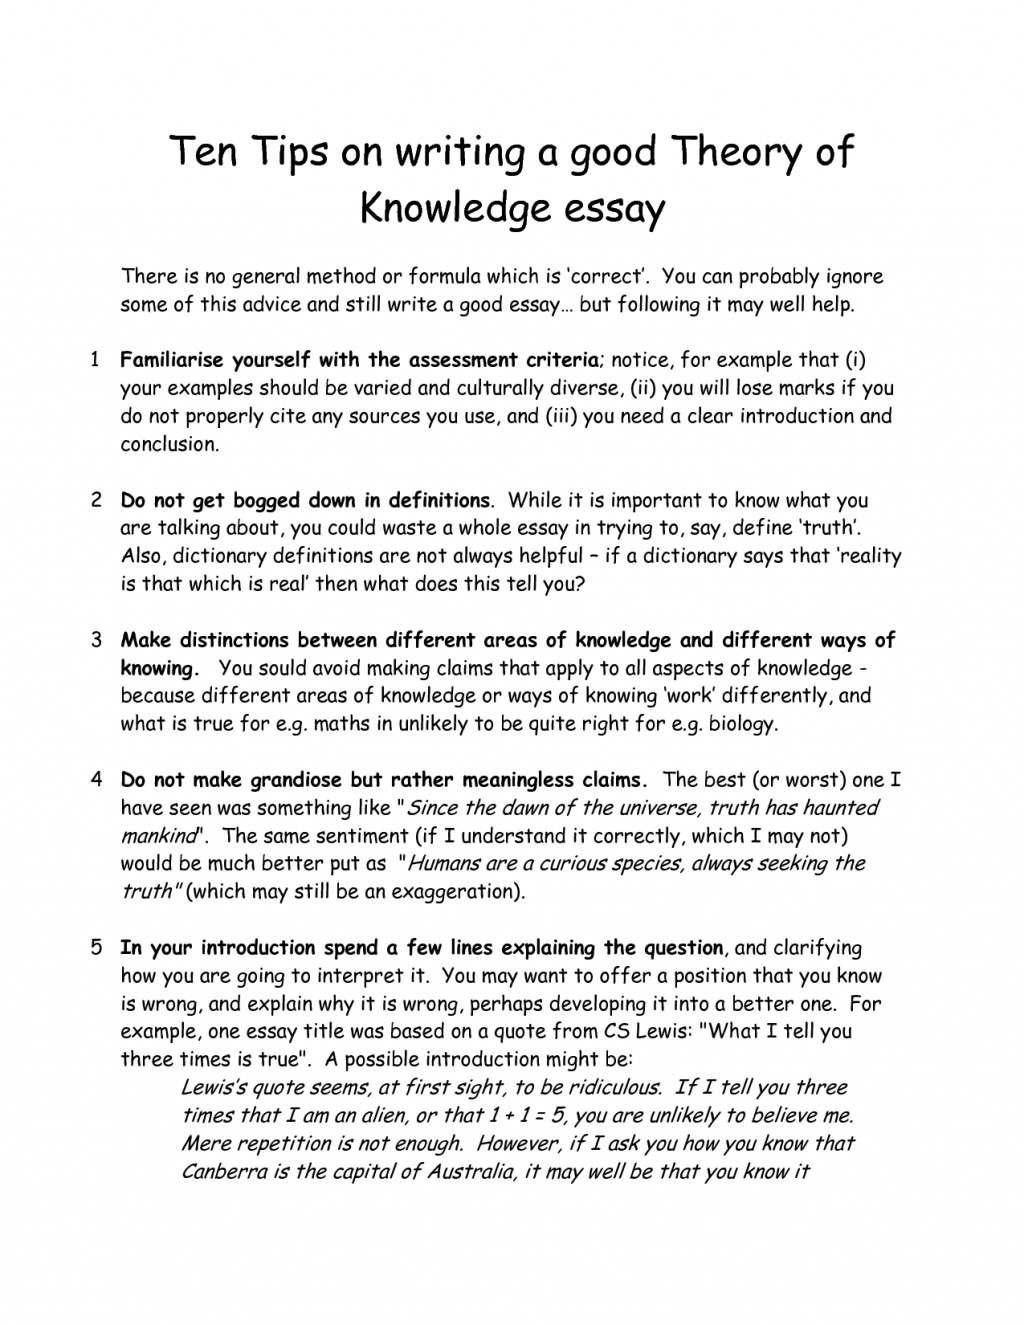 003 Qqllg0v8ct How To Write An Essay About Yourself Best In Spanish English Third Person Large